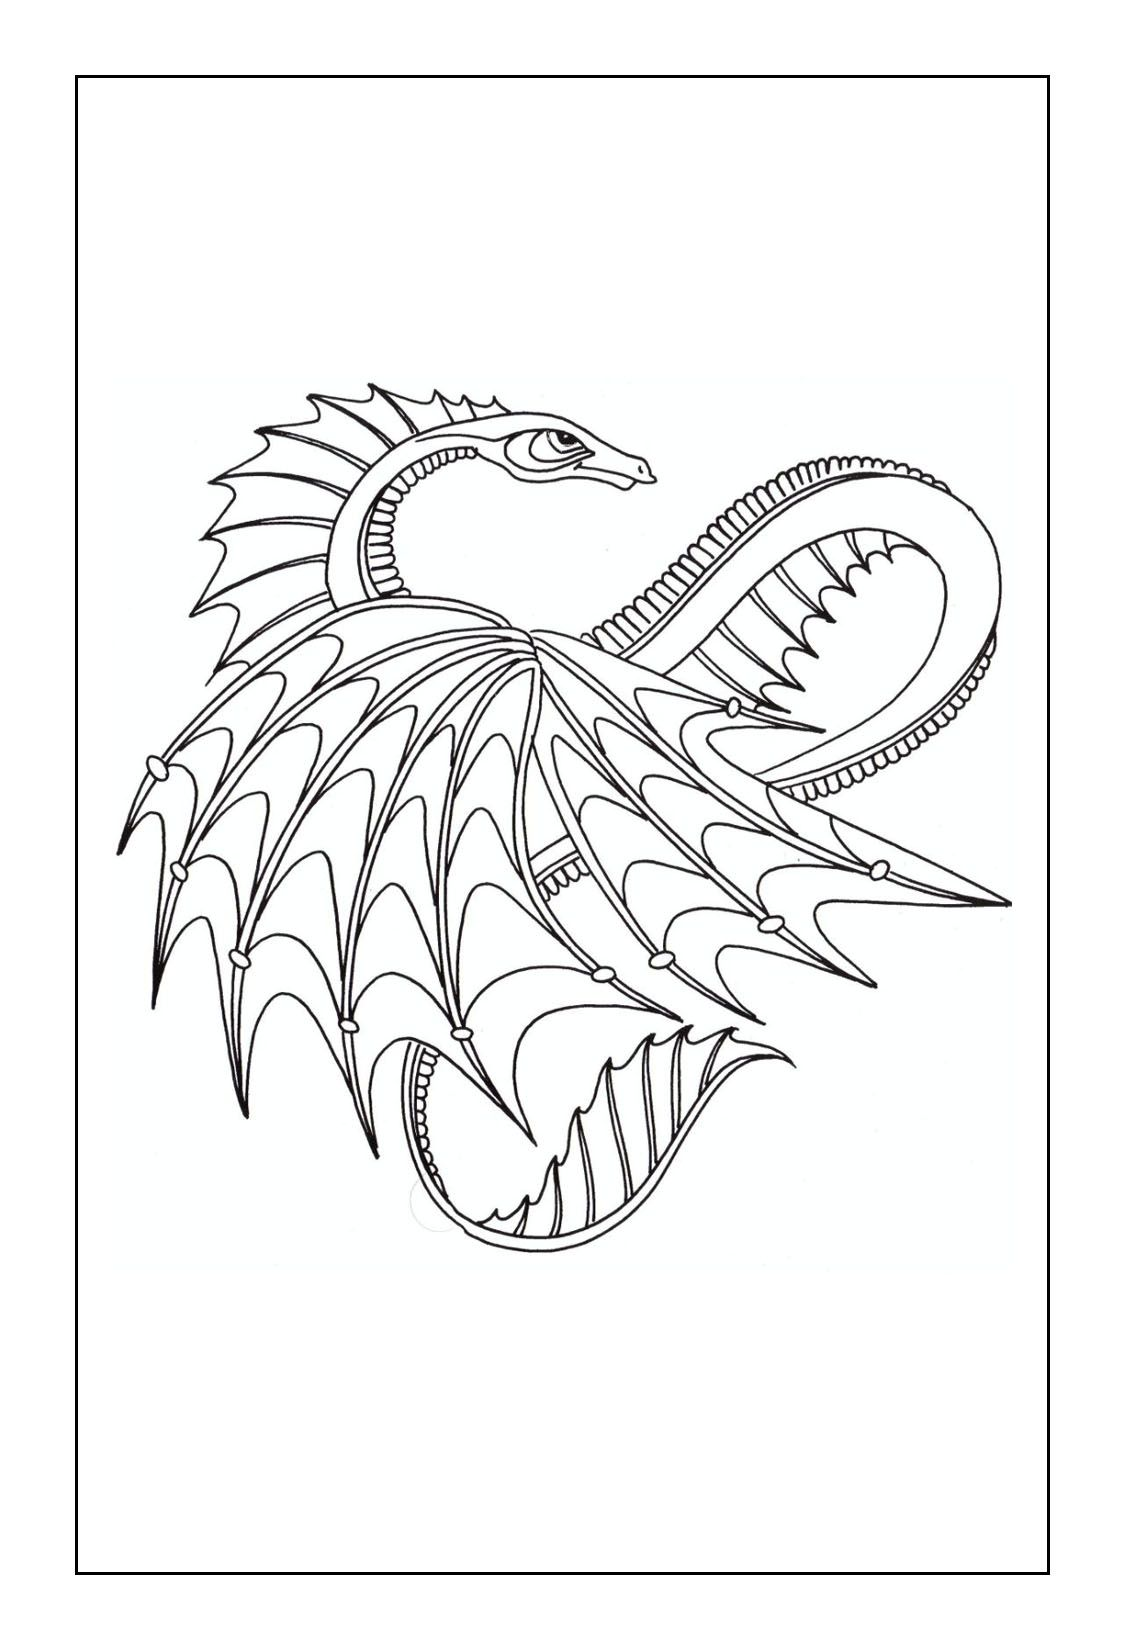 Dragon Coloring Pages | coloring pages | Pinterest | Dragons